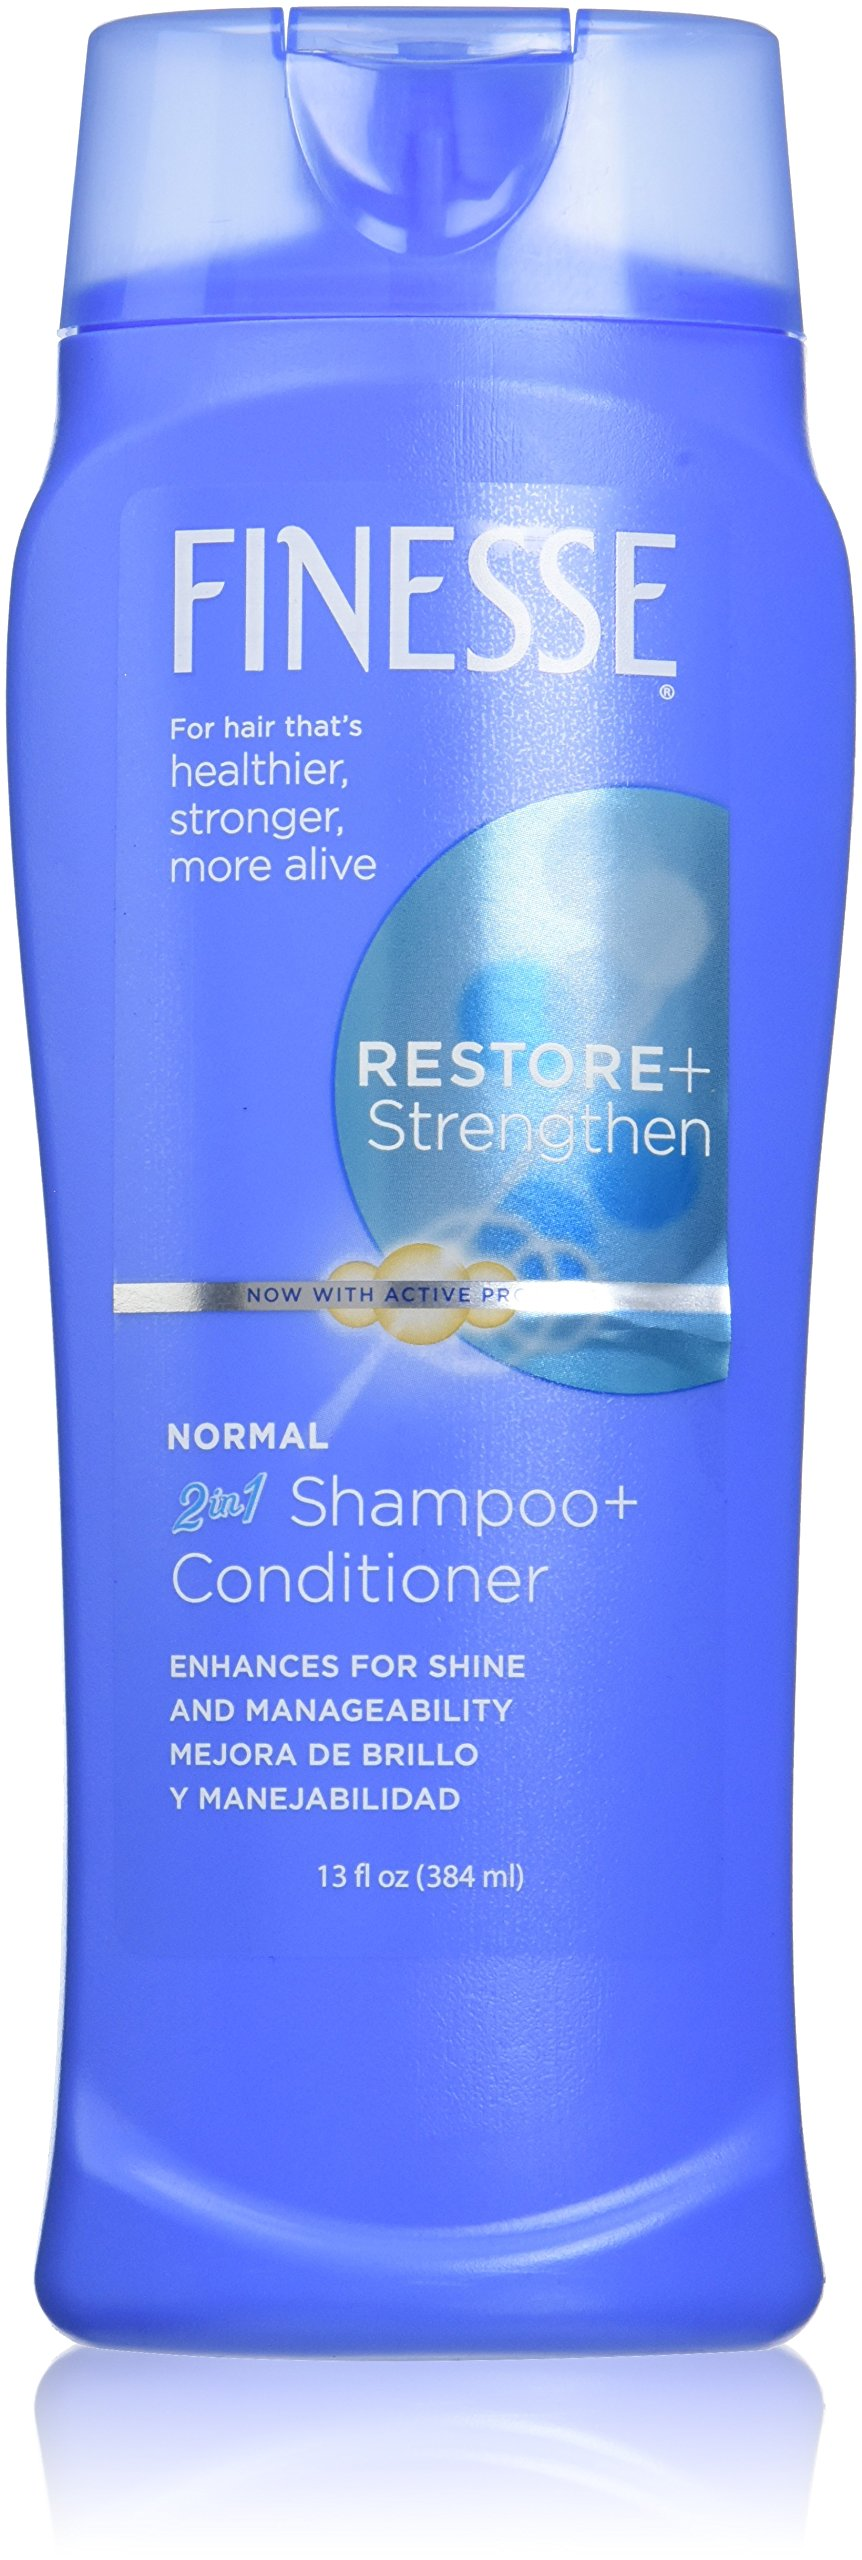 Finesse Restore + Strengthen Normal 2in1 Shampoo + Conditioner (formerly Texture Enhancing) - 13oz - 6-Pack - Enhance Shine & Manageability